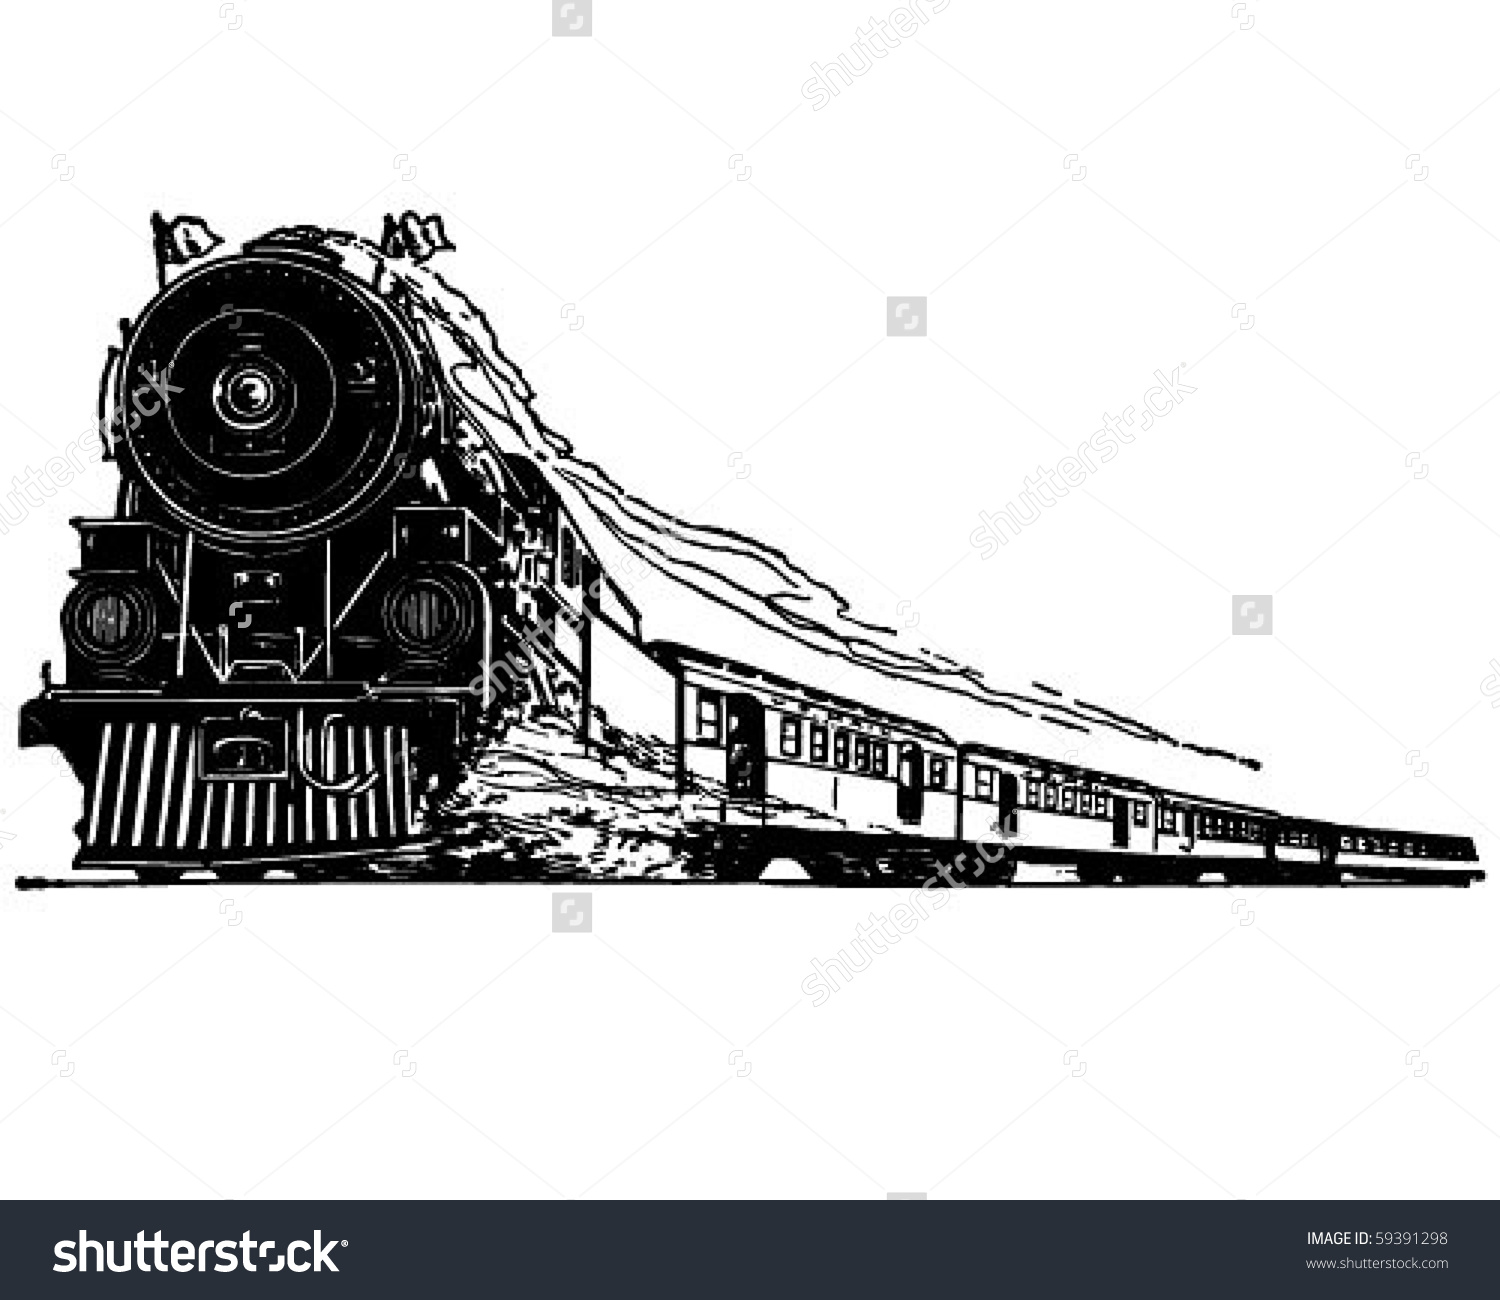 Steam Locomotive Retro Clip Art Stock Vector 59391298.